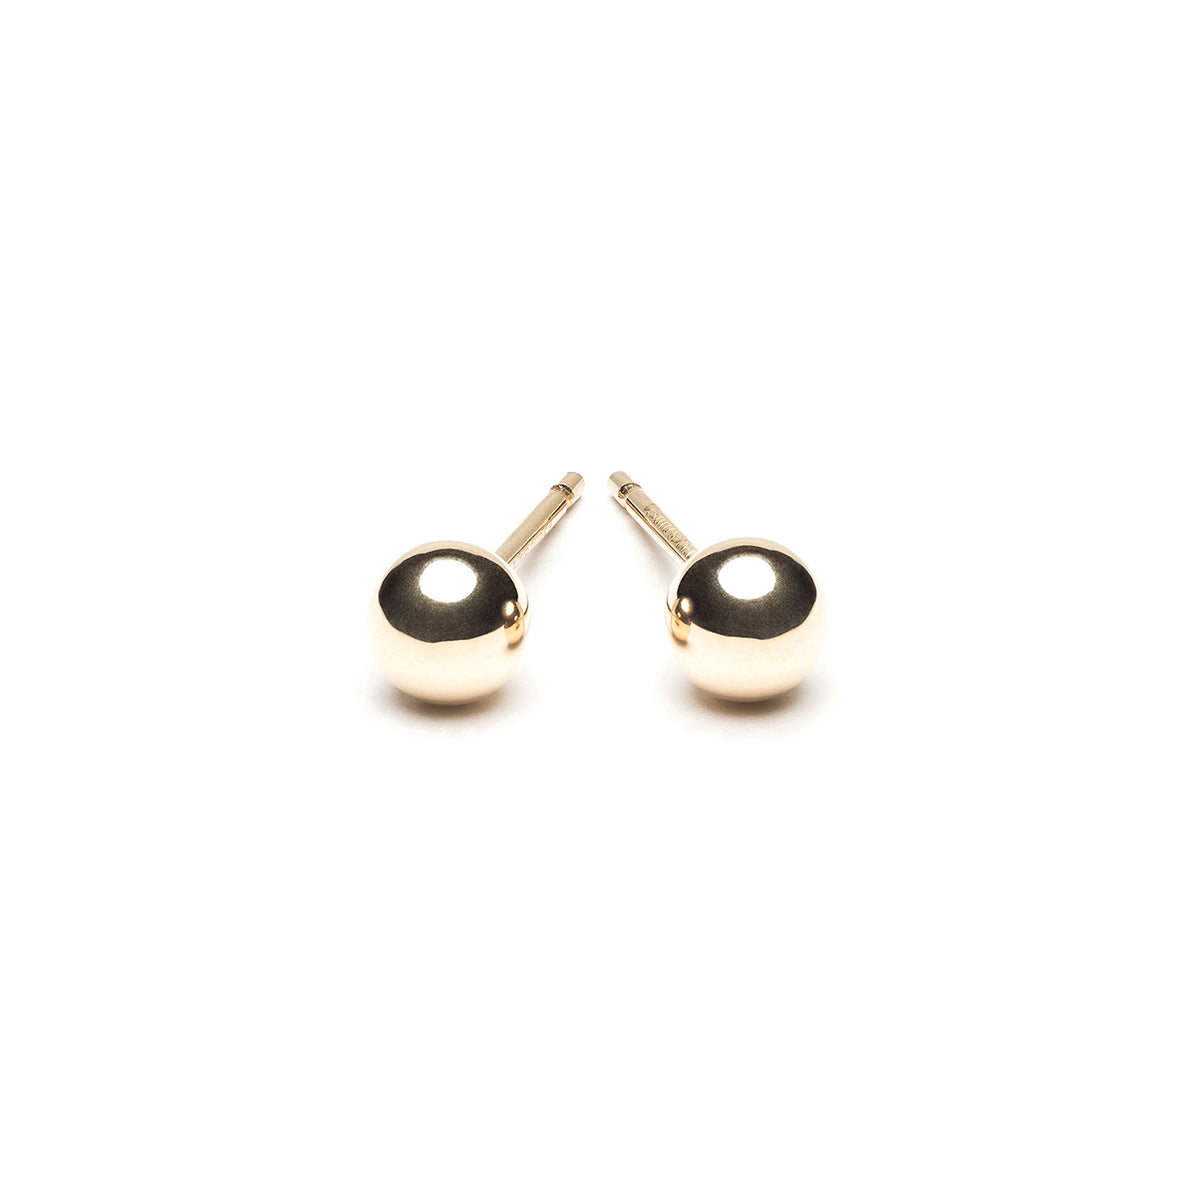 Hypoallergenic Earrings And Jewelry Simply Whispers